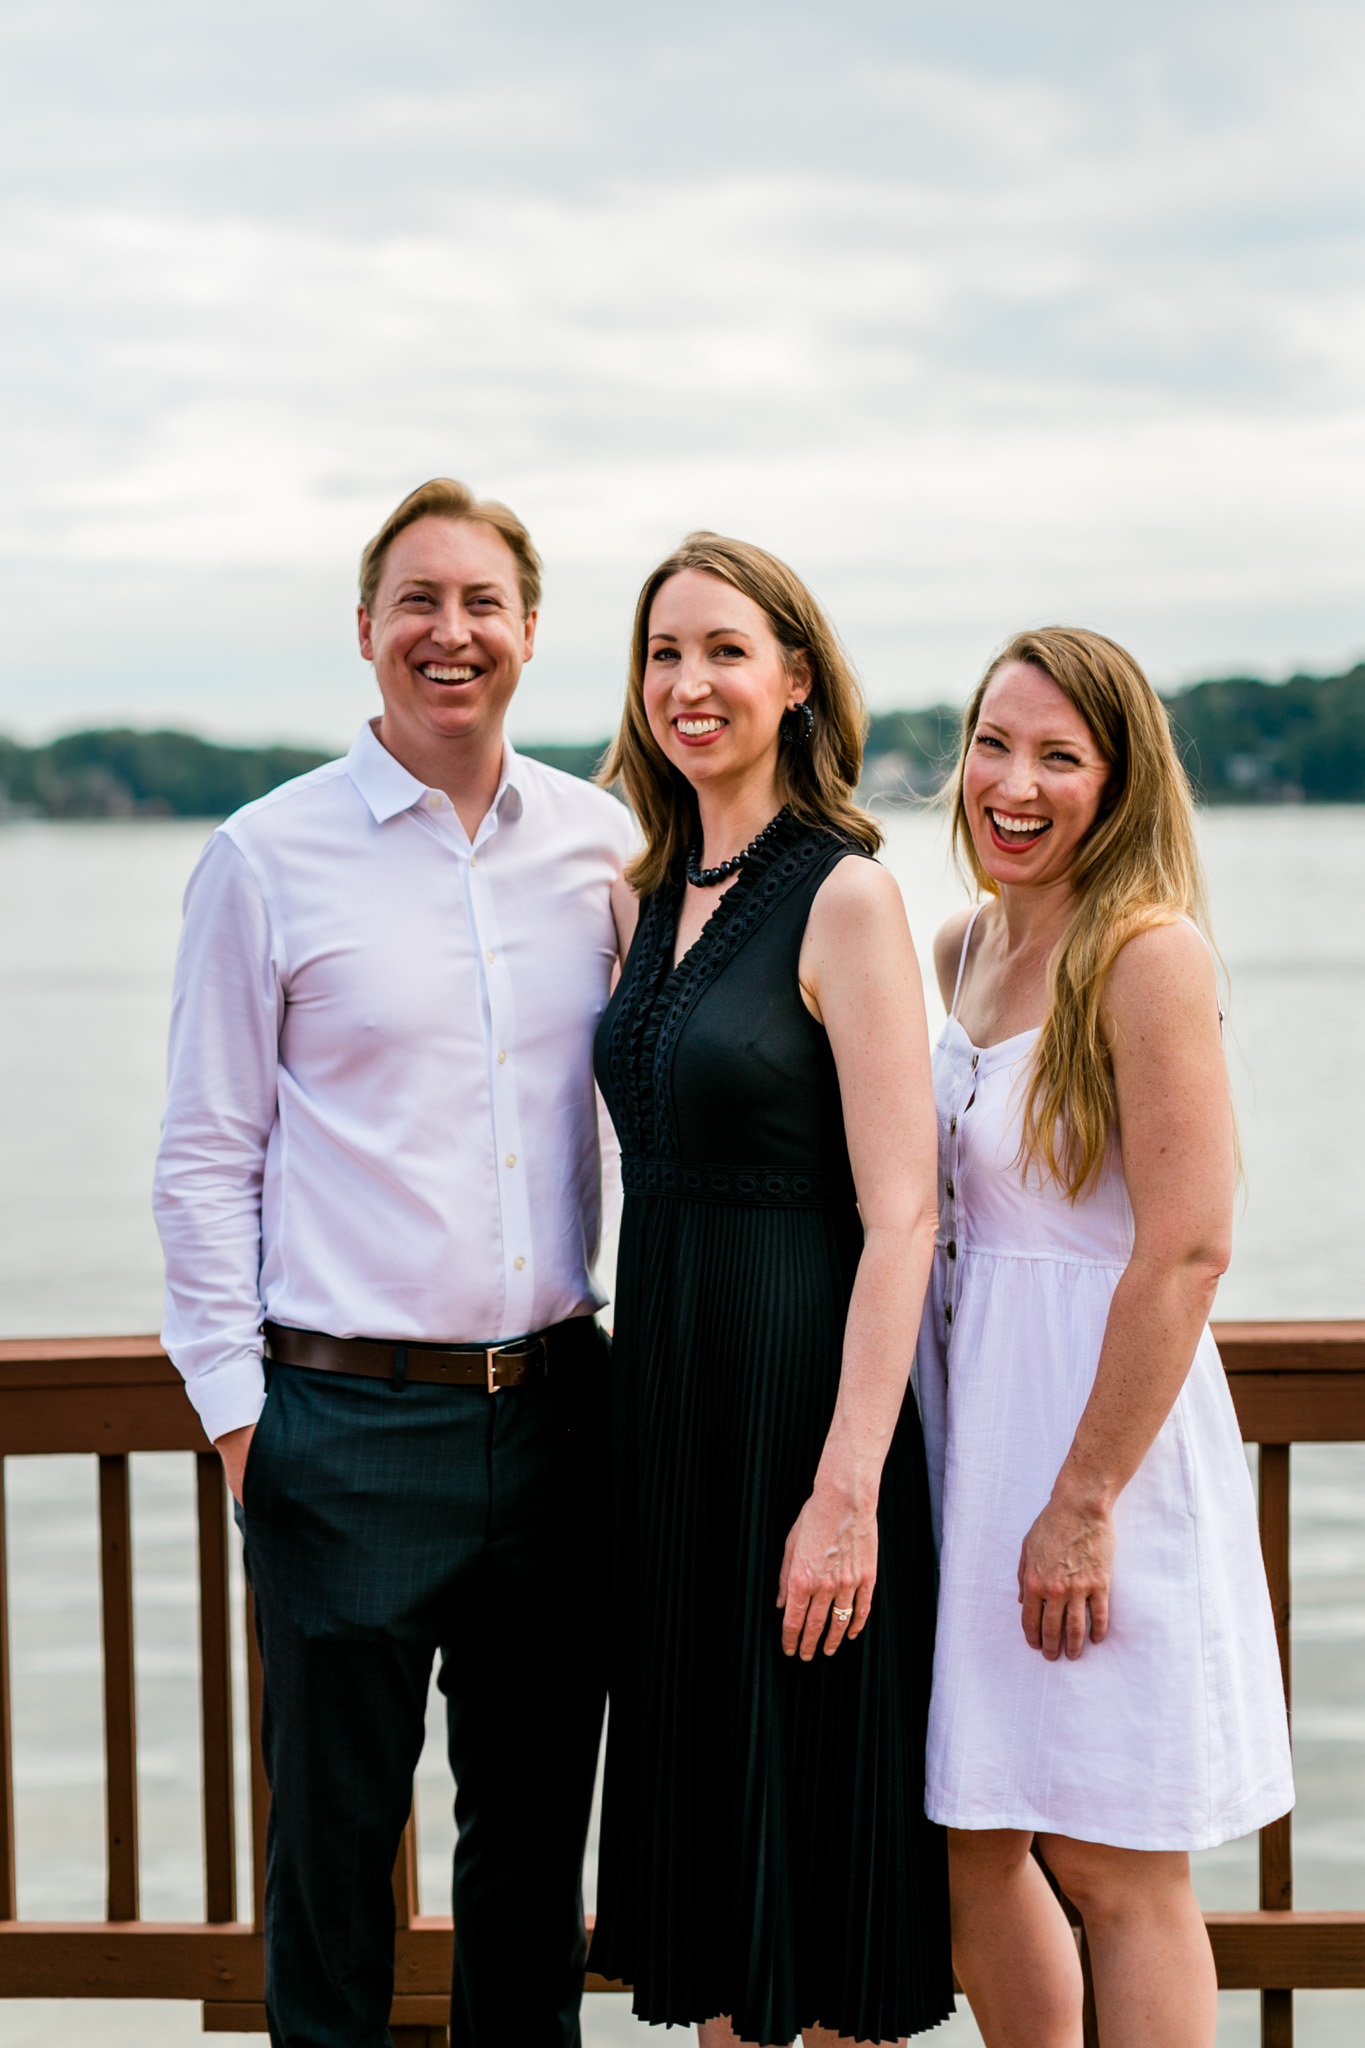 Sibling portrait of brother and two sisters | Raleigh Family Photographer | By G. Lin Photography